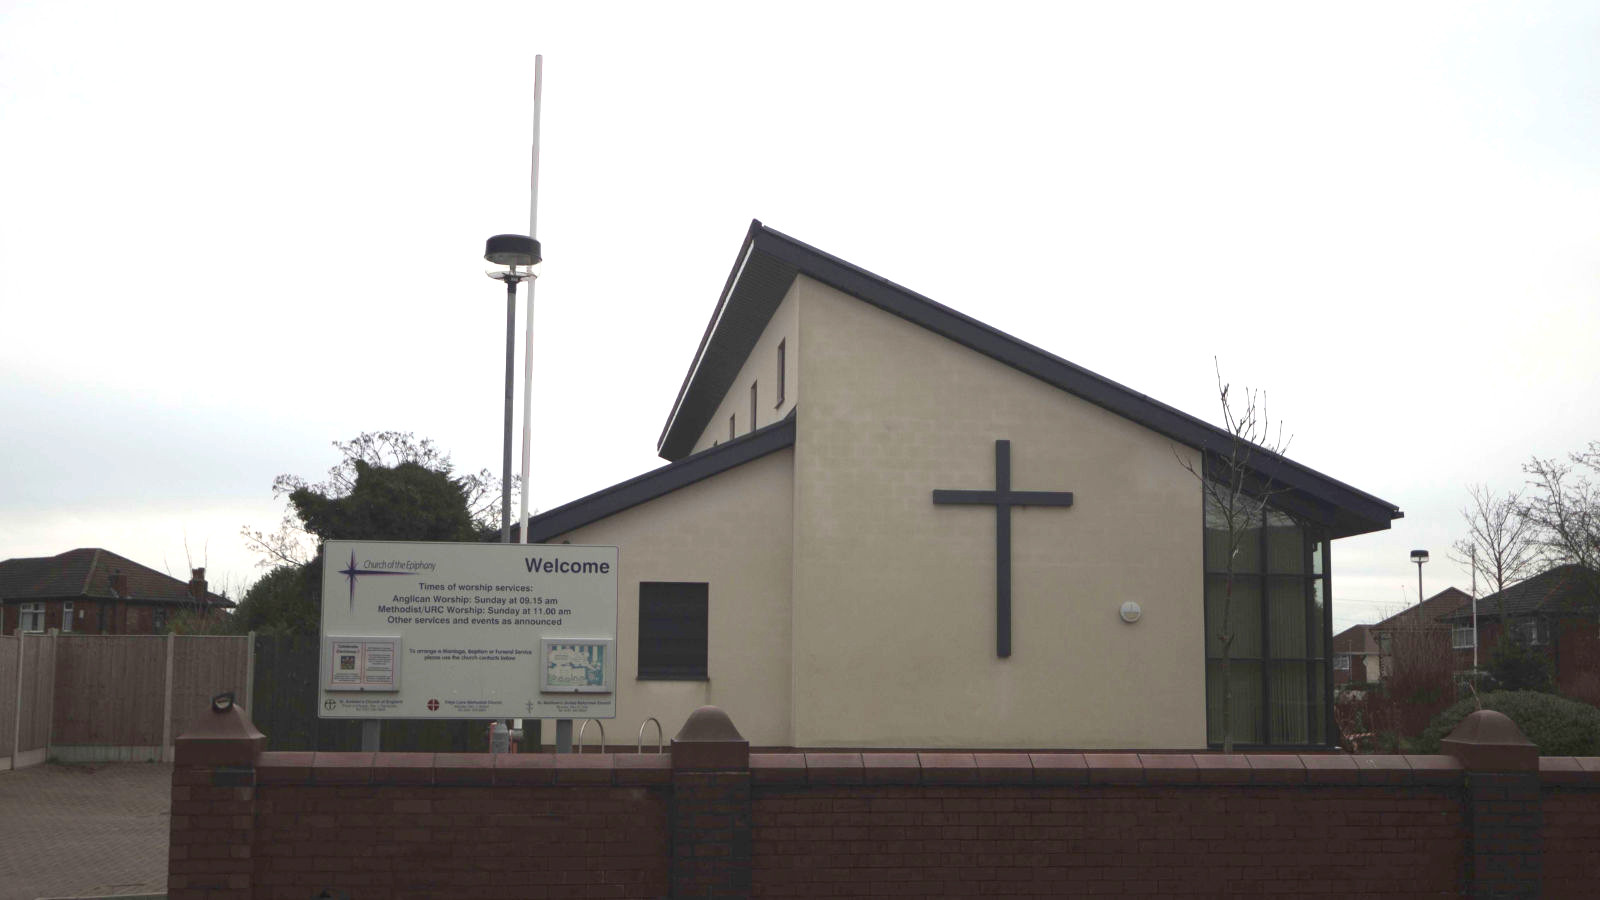 Edge Lane Methodist Church